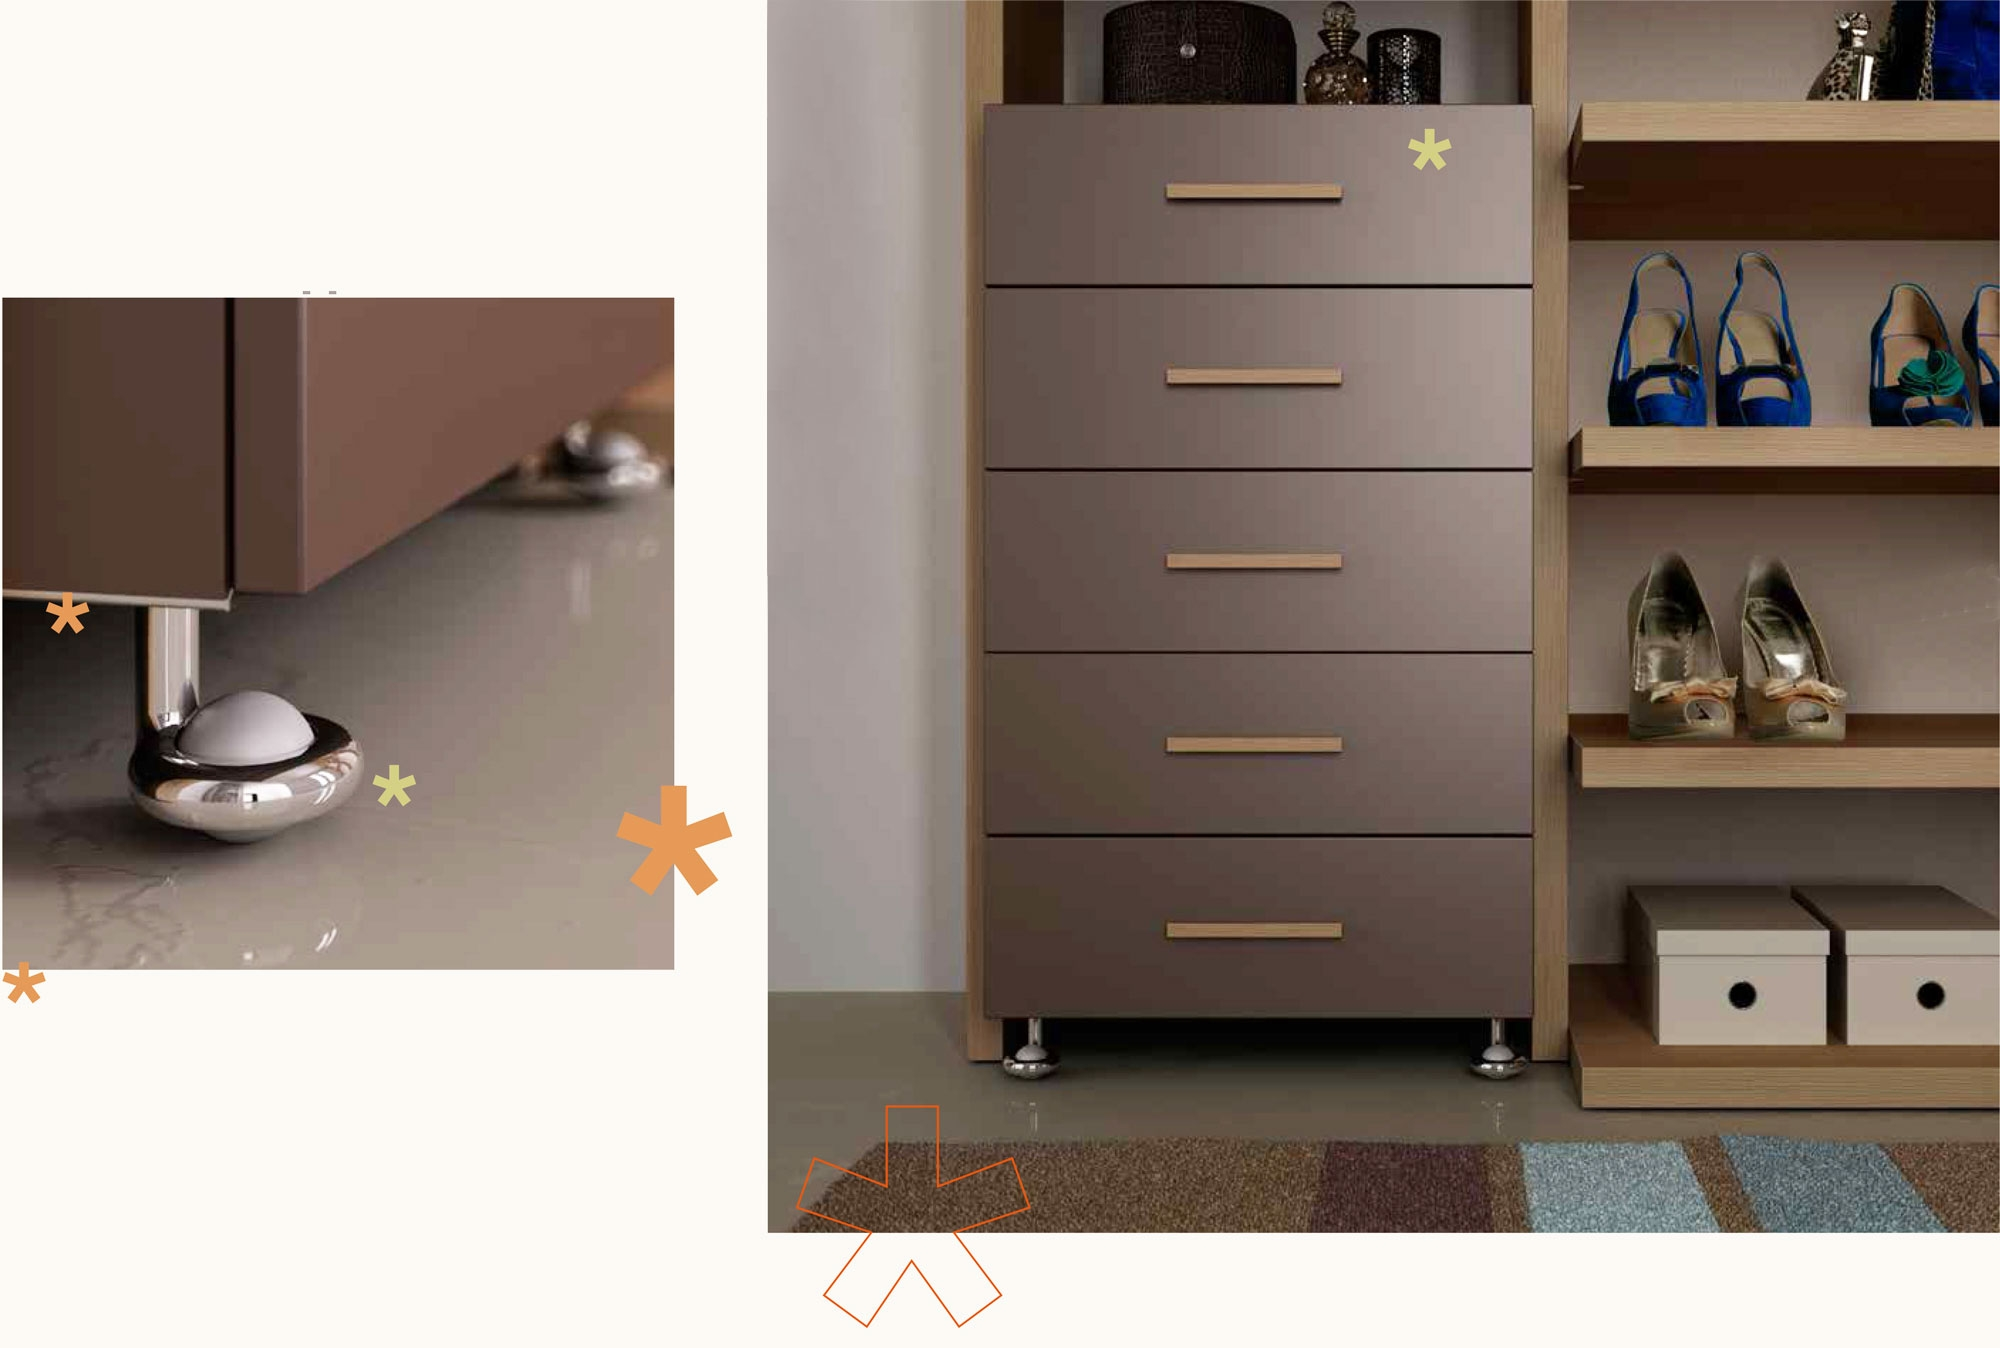 dressing sur mesure en l olme chocolat moretti compact so nuit. Black Bedroom Furniture Sets. Home Design Ideas